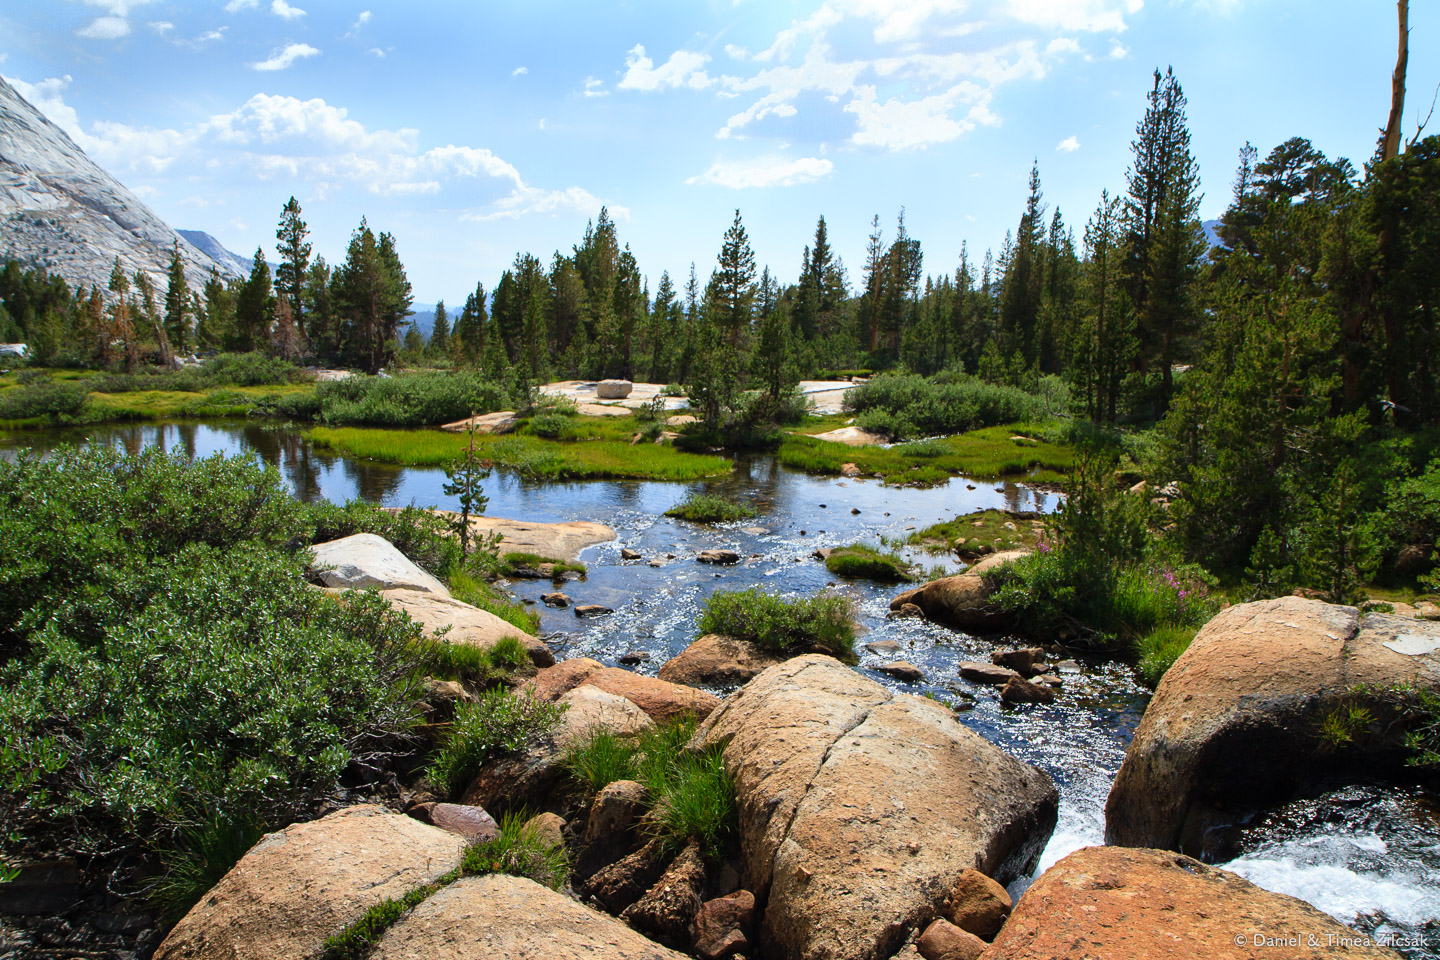 Fletcher Lake outlet and the beginning of Fletcher Creek - Backpacking Yosemite